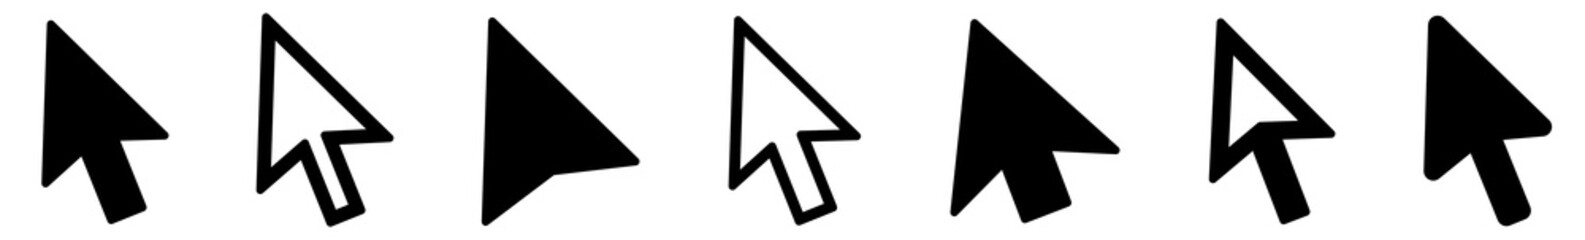 Cursor | Mouse Arrow Icon | Computer Mouse Pointer | Click Variations